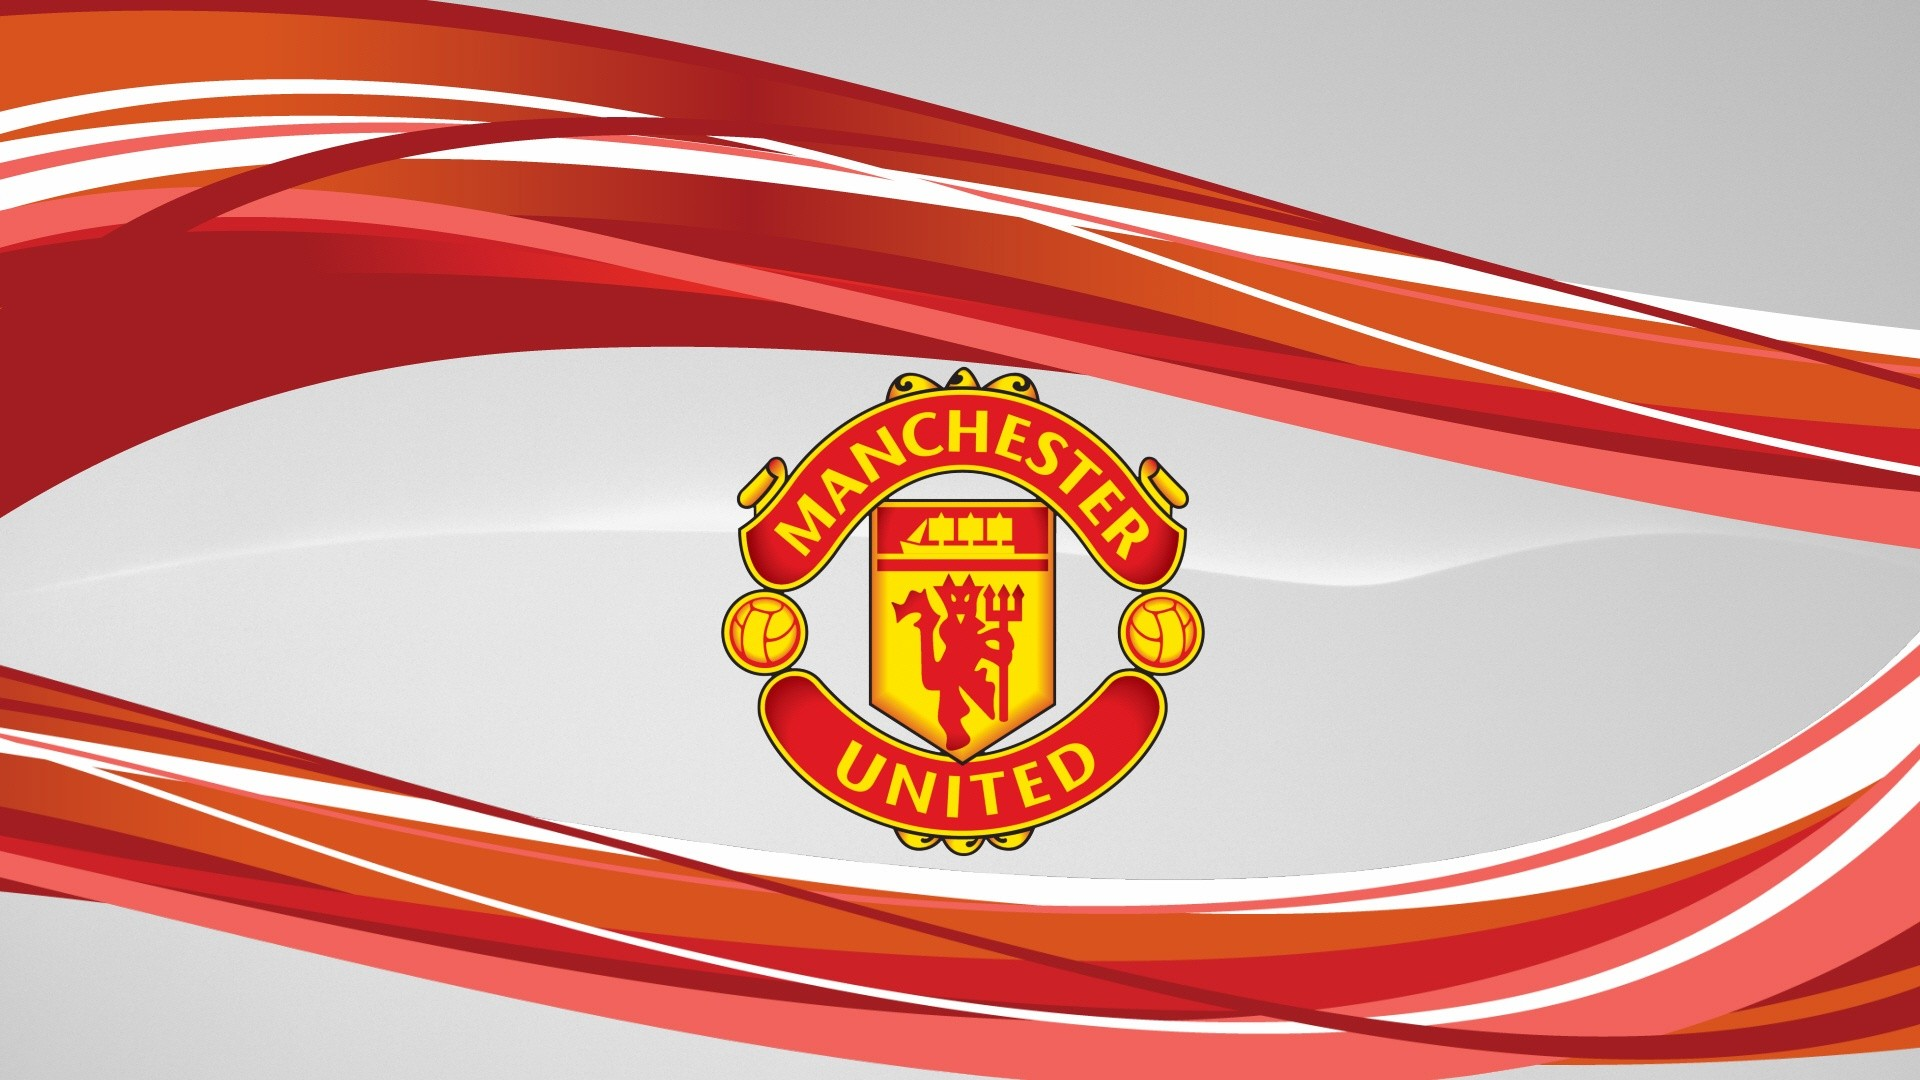 Manchester hd impremedia download manchester united fc logo hd picture full size voltagebd Image collections